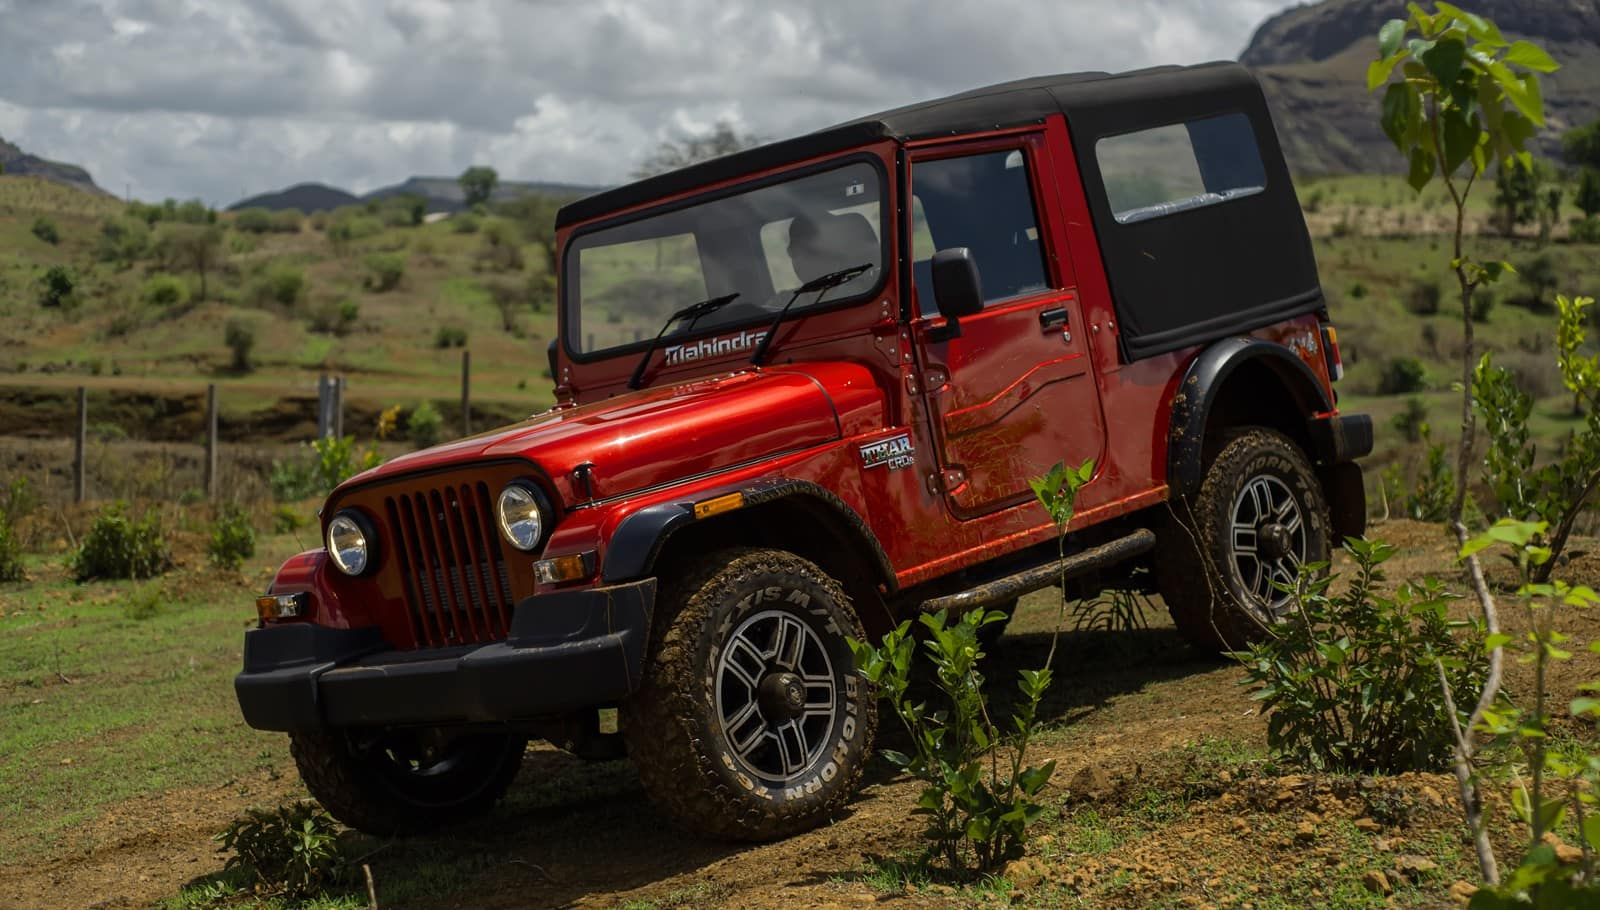 Next Generation Mahindra Thar Under Works